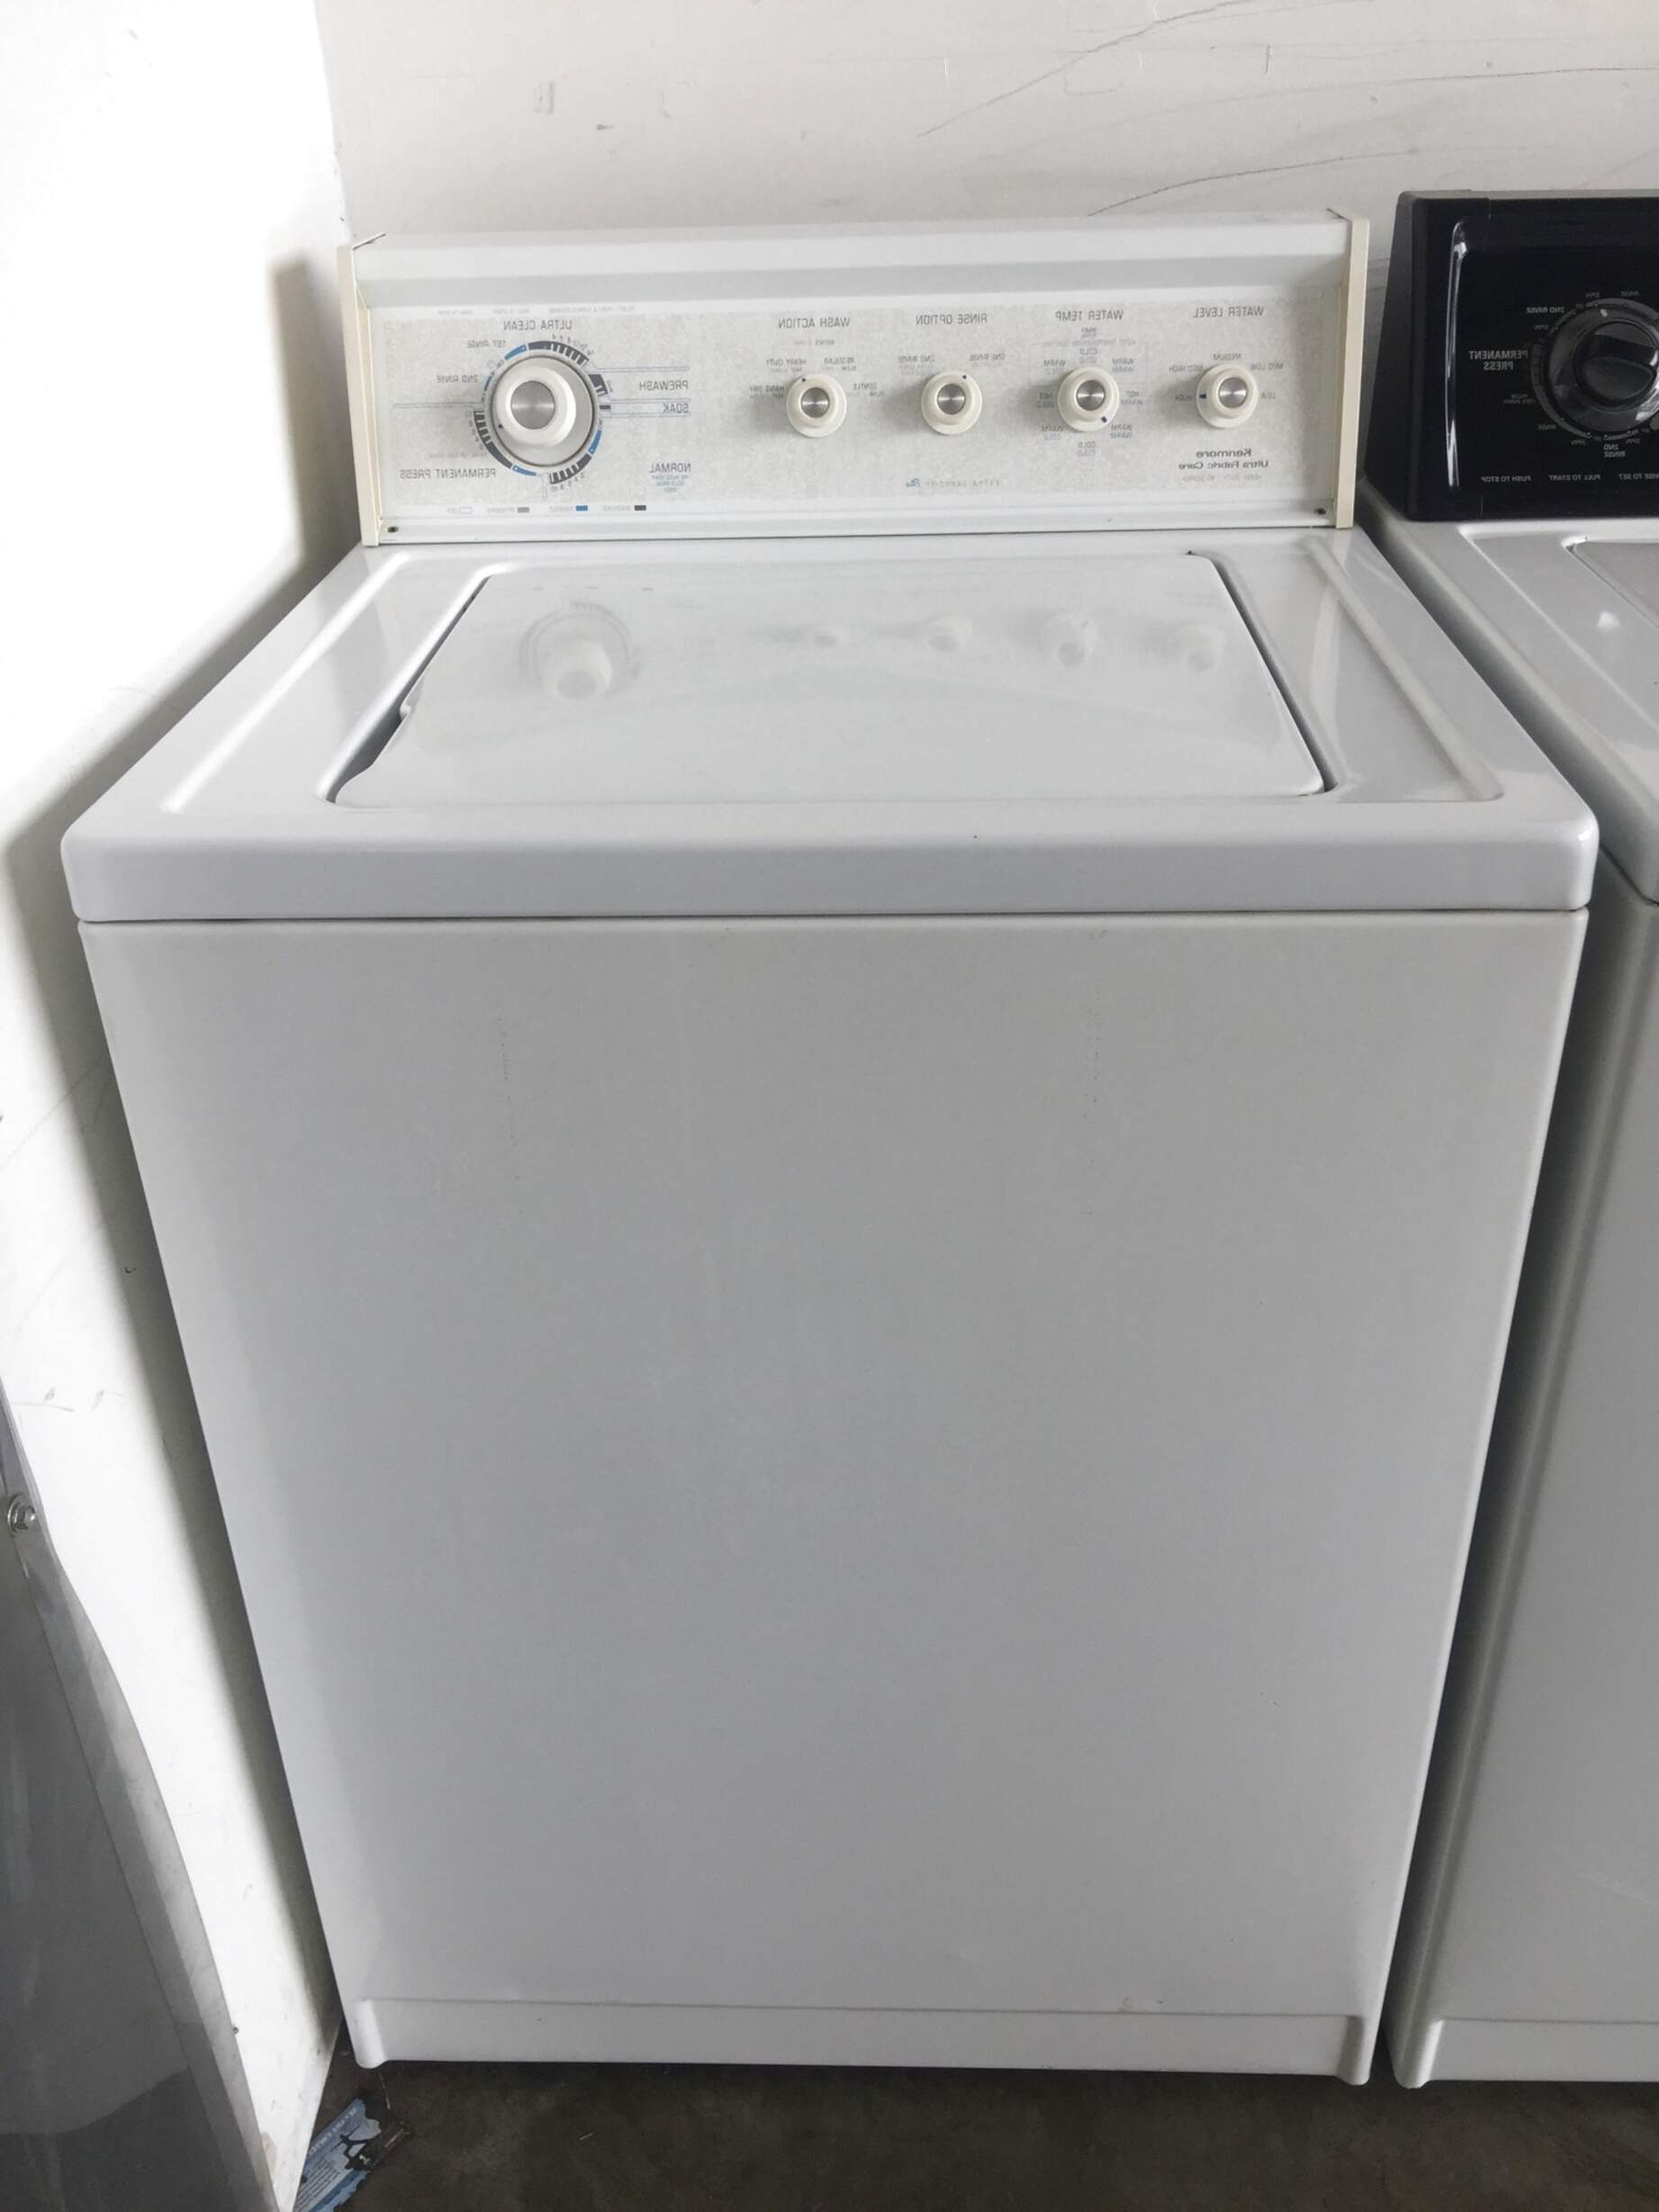 Kenmore 80 Series Washer for sale   Only 2 left at -60%